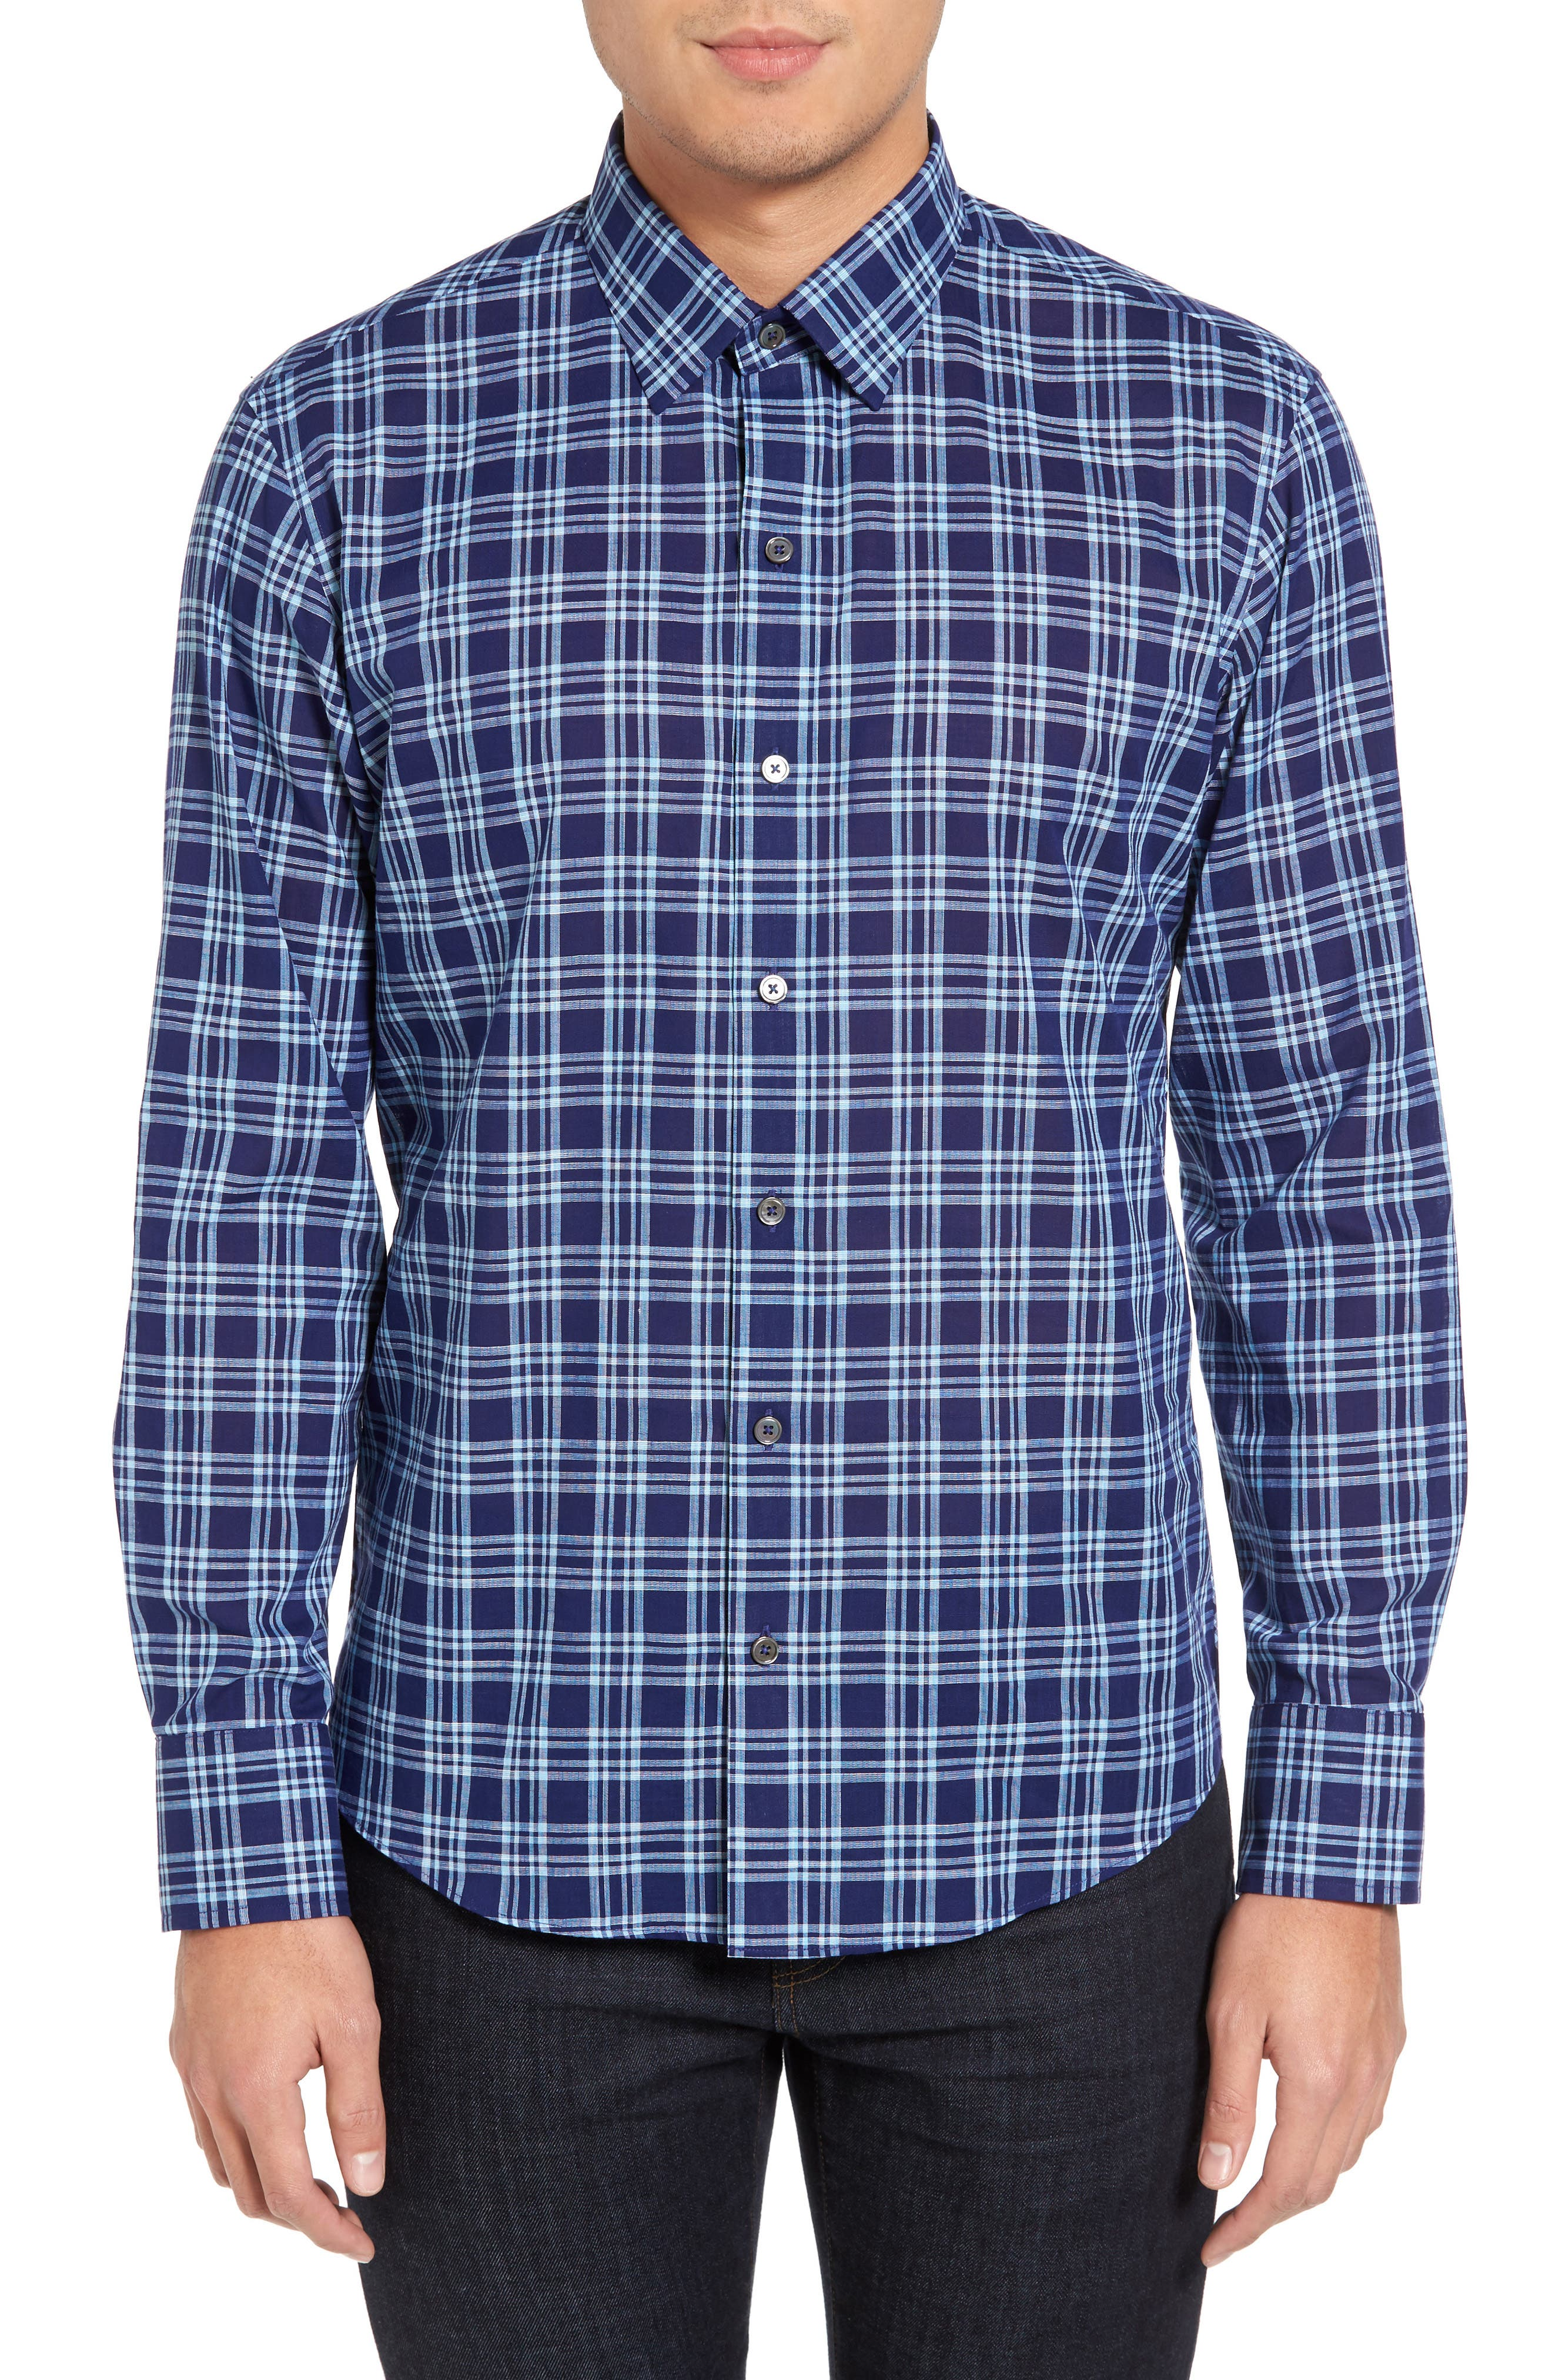 Main Image - Zachary Prell Leventhal Trim Fit Plaid Sport Shirt